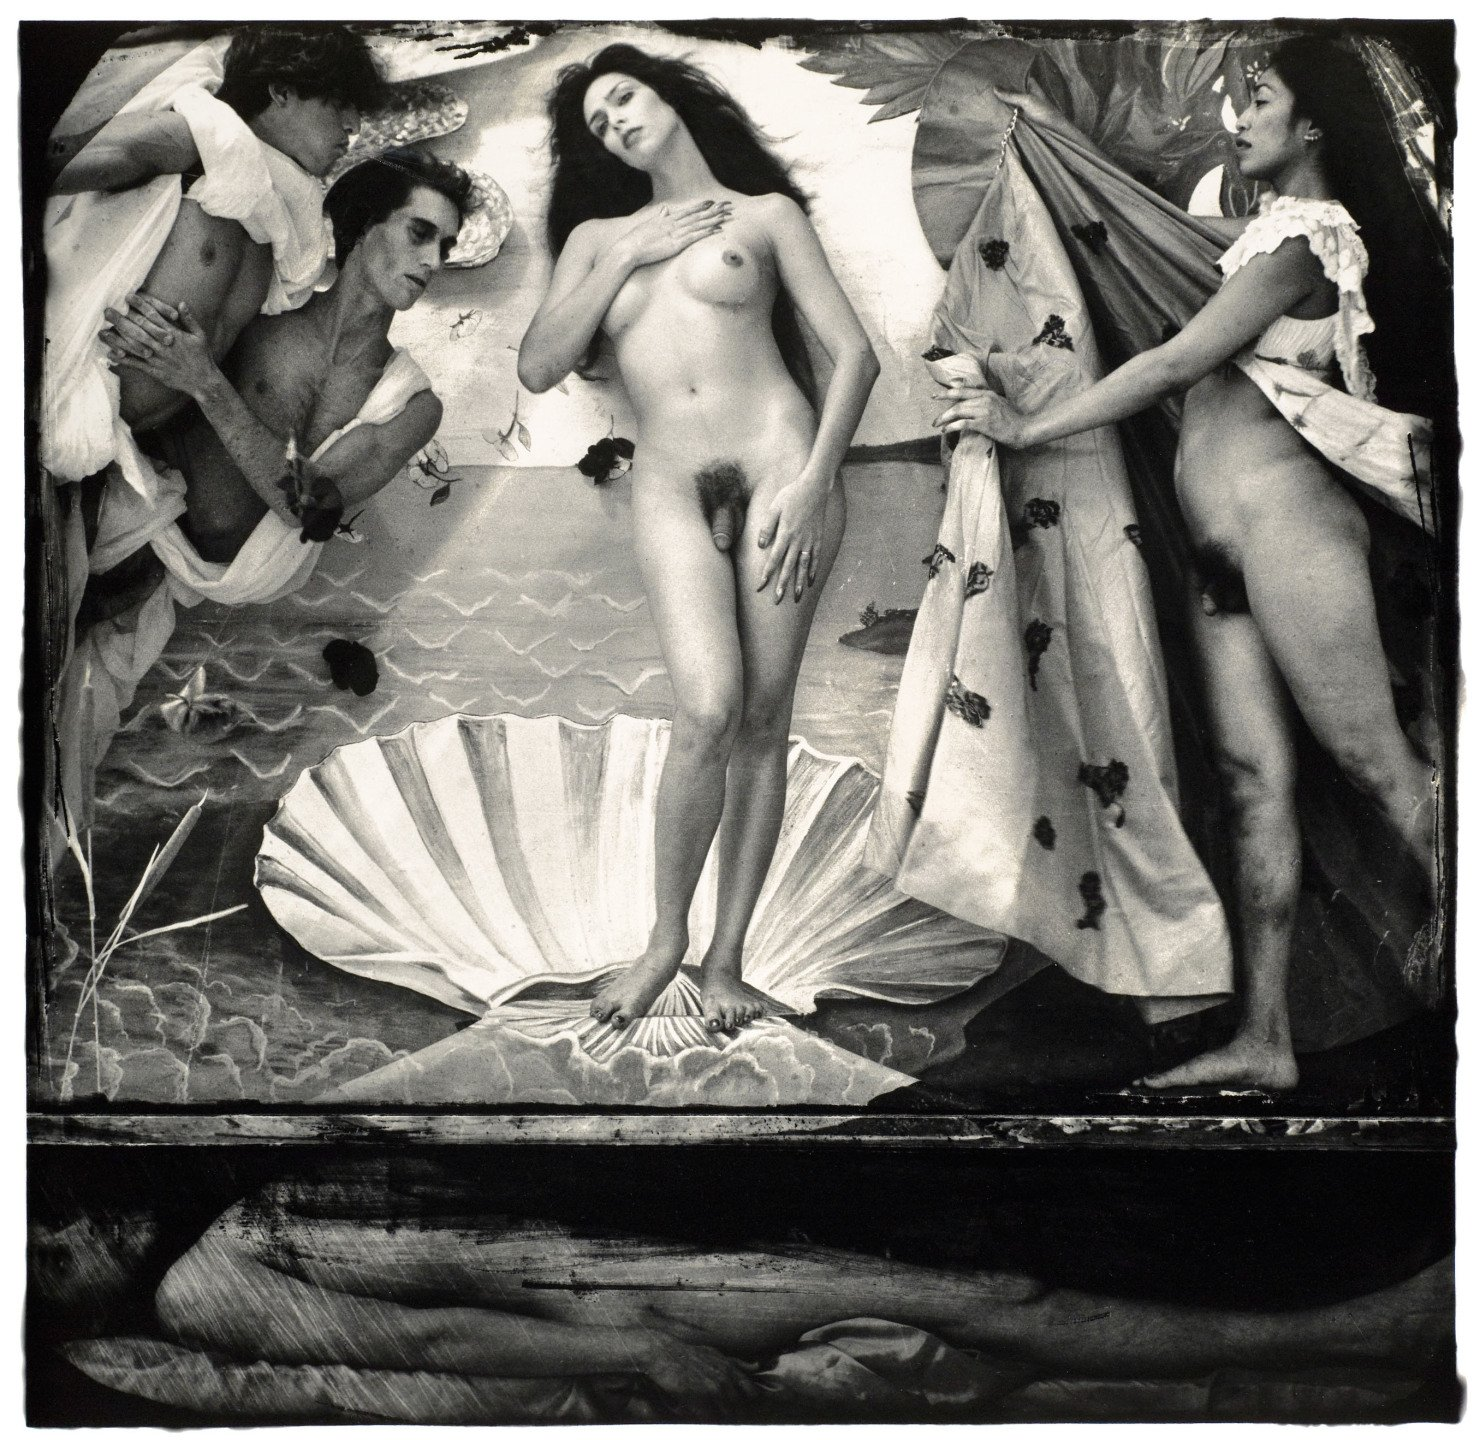 http://media.artspace.com/media/joel_peter_witkin/gods_of_earth_and_heaven_la/joel_peter_witkin_gods_of_earth_and_heaven_la_2560x1440.jpg?v=ae1a4880363c231169dcea31bce4e2a4